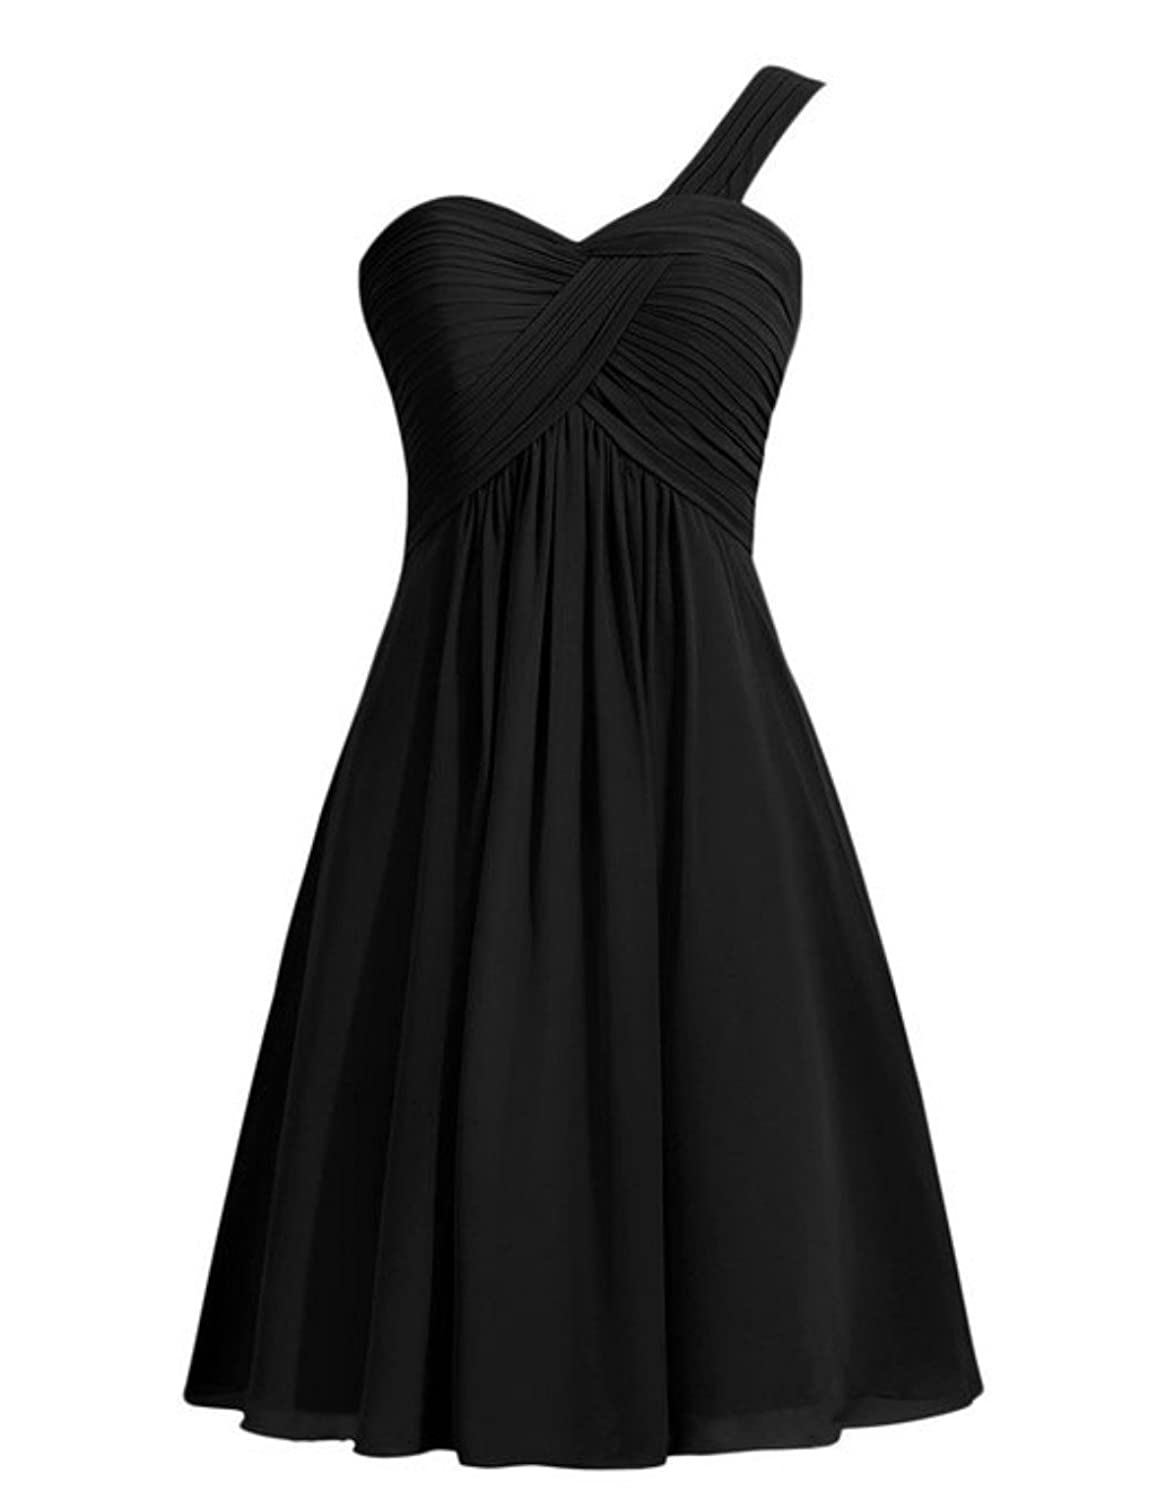 Anna's Bridal Women's One Shoulder Short Bridesmaid Dresses for Wedding Party